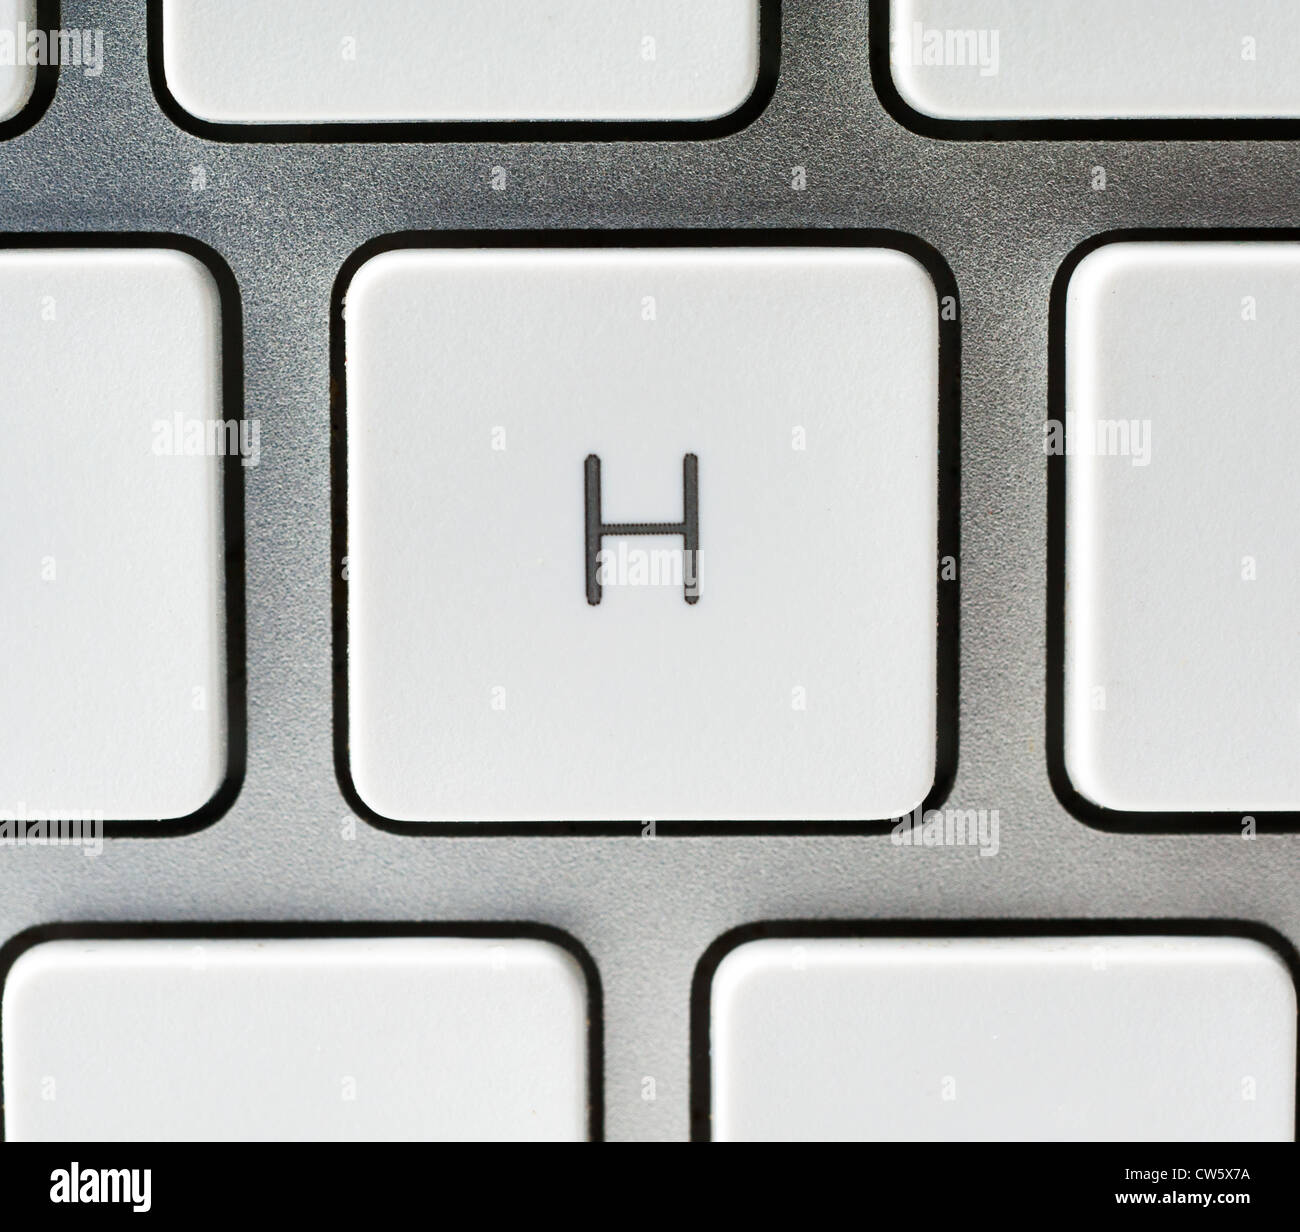 Letter H on an Apple keyboard - Stock Image